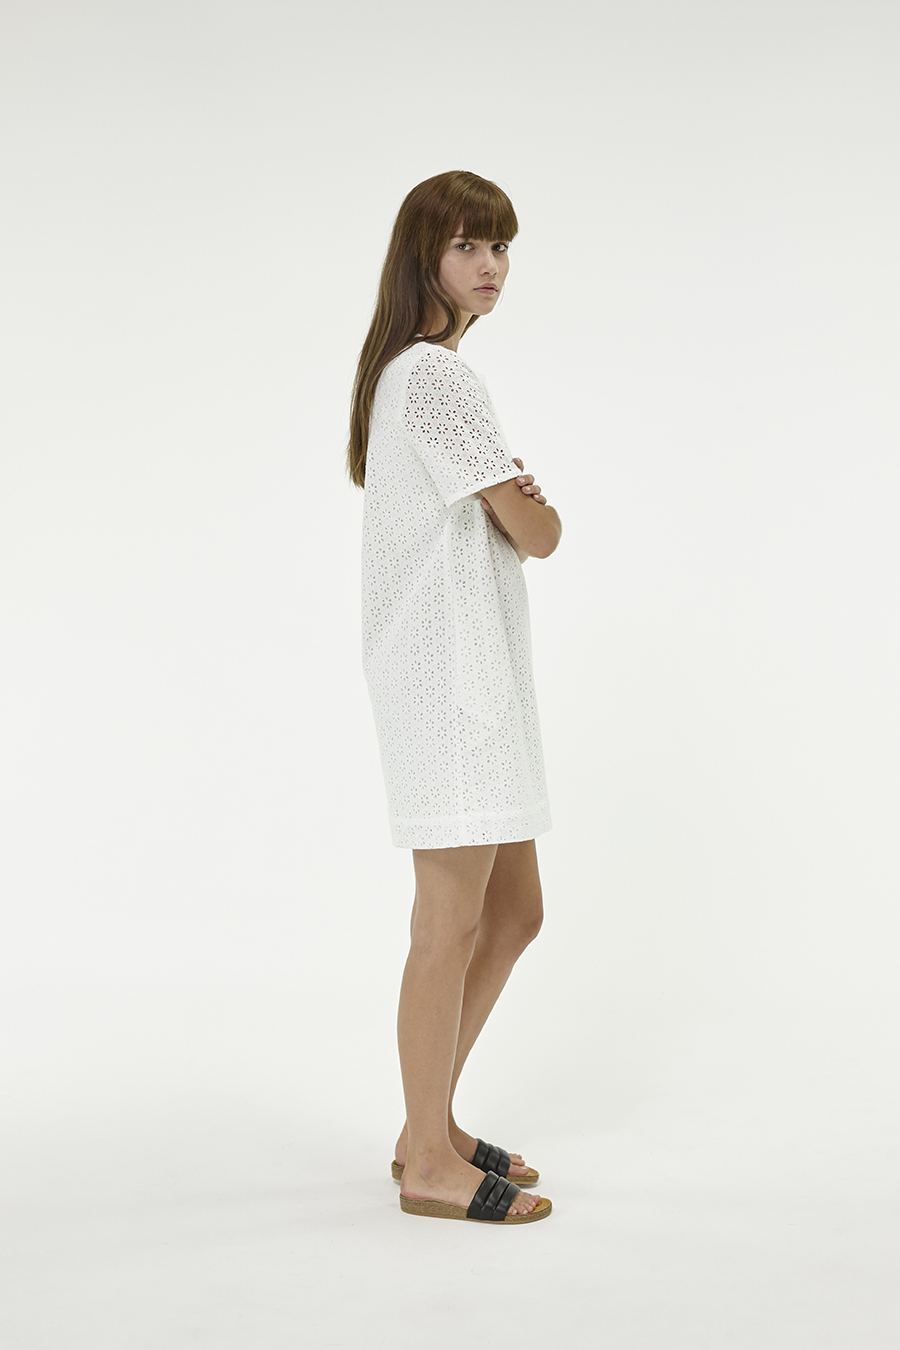 Huffer_Q3-16_W-Hope-Shell-Dress_White-04